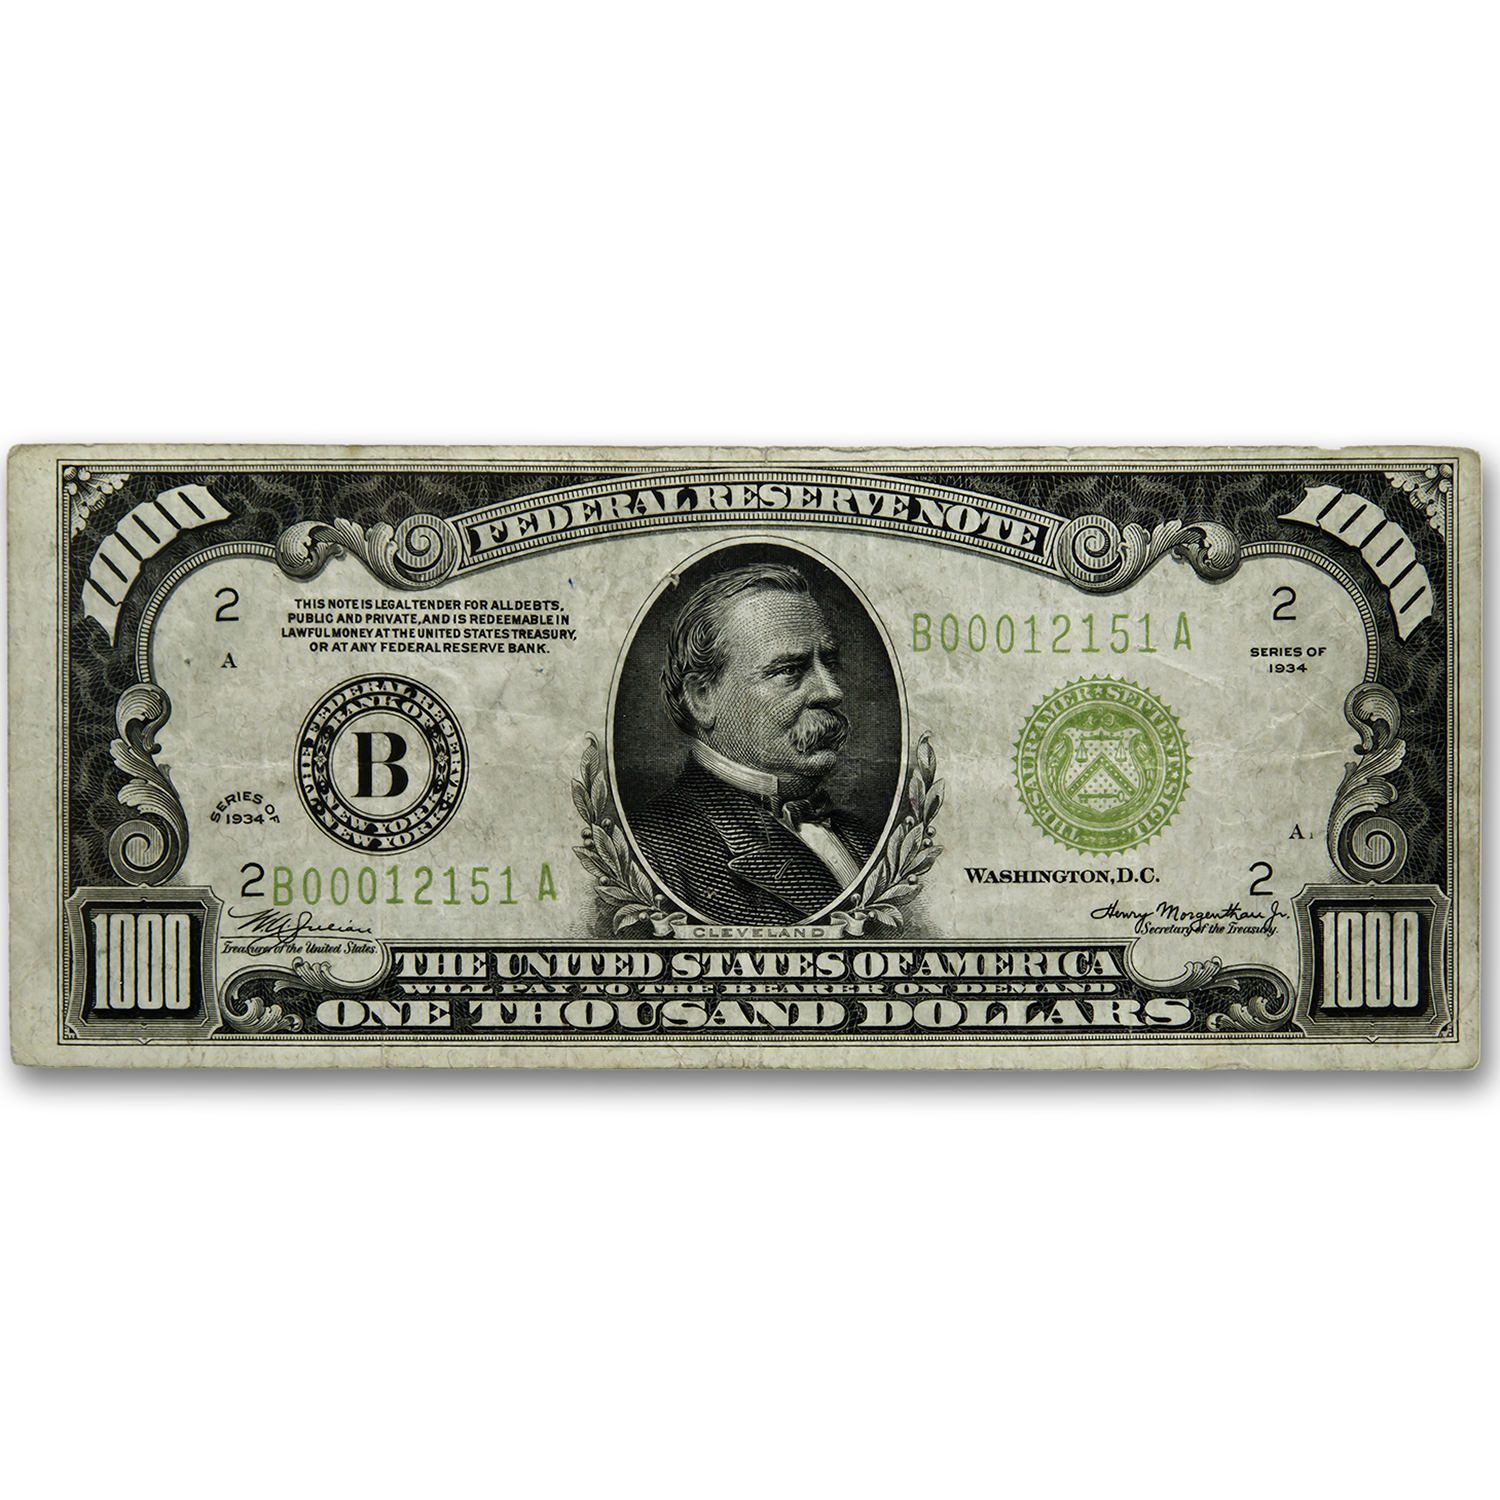 1934 (B-New York) $1,000 FRN VF (LGS, FR#2211-B)